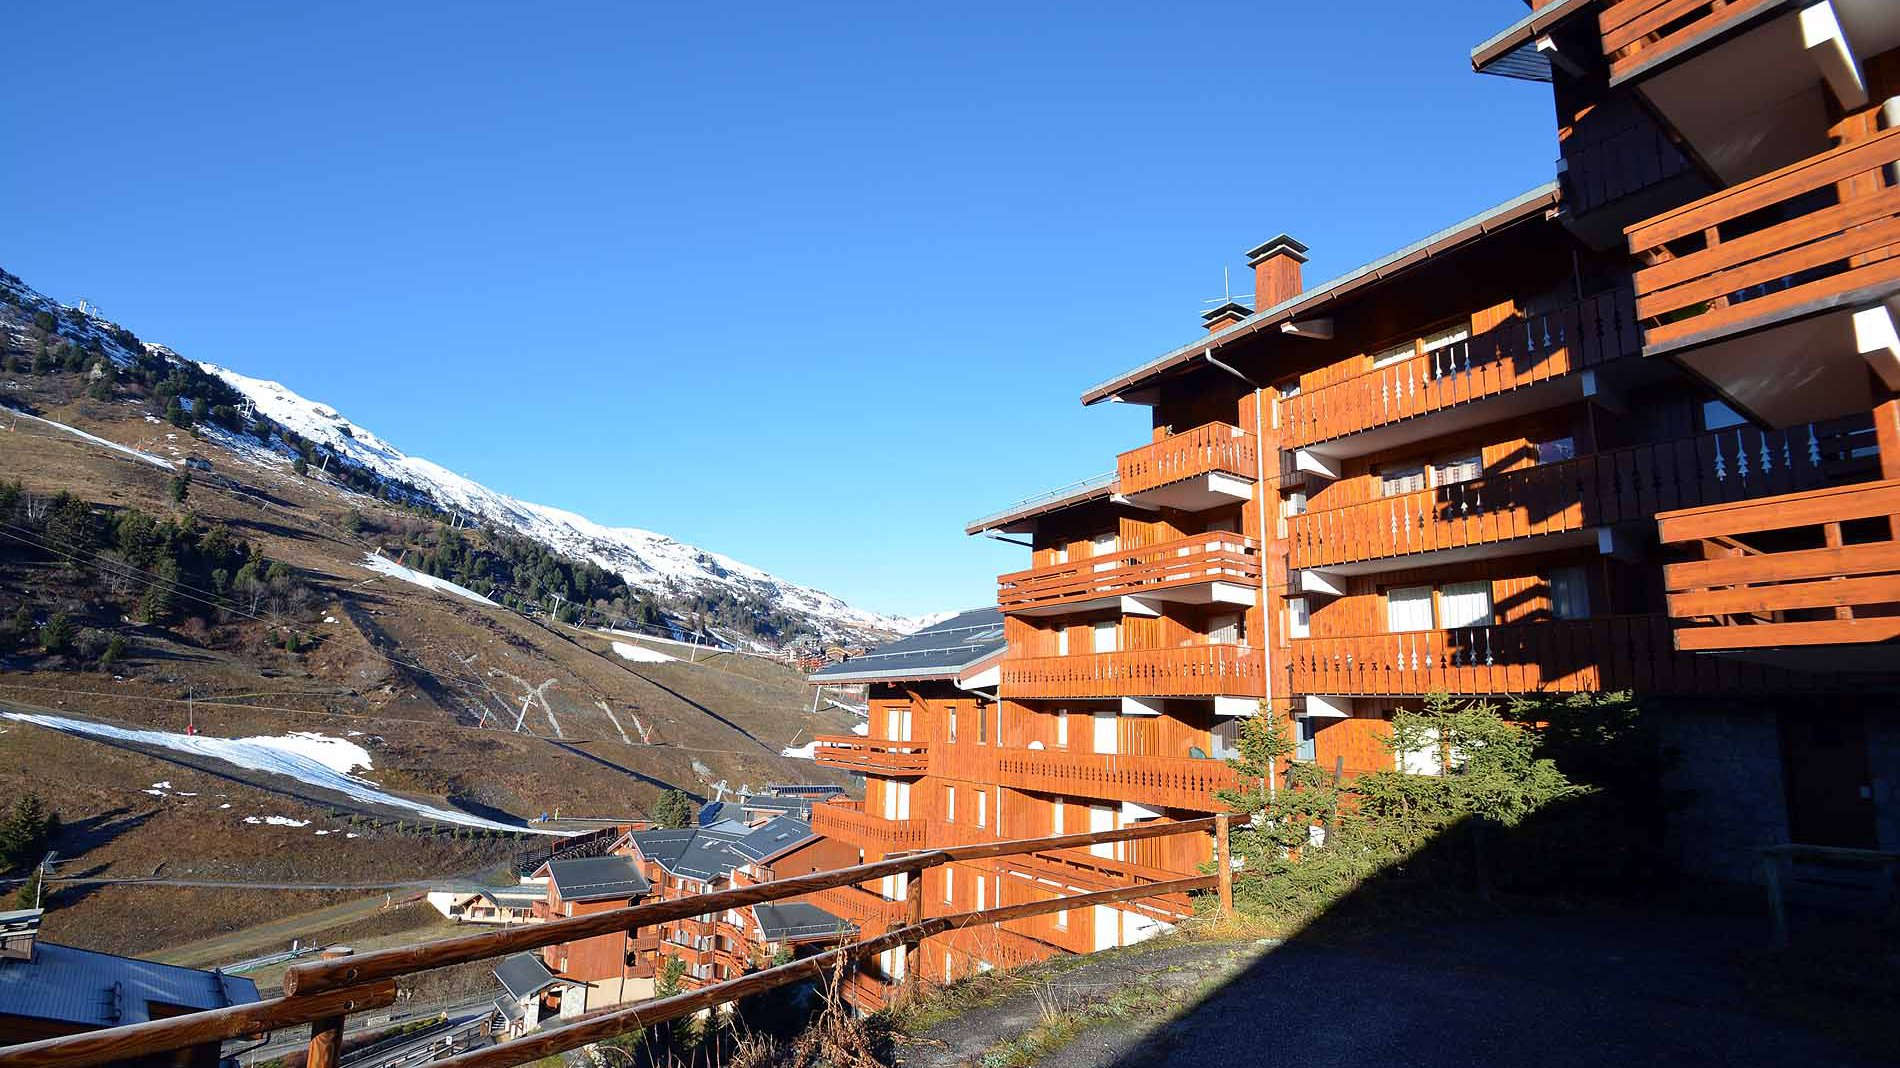 Meribel Appartments 28 Images Flat Apartments For Rent In M 233 Ribel Mottaret Iha 56661